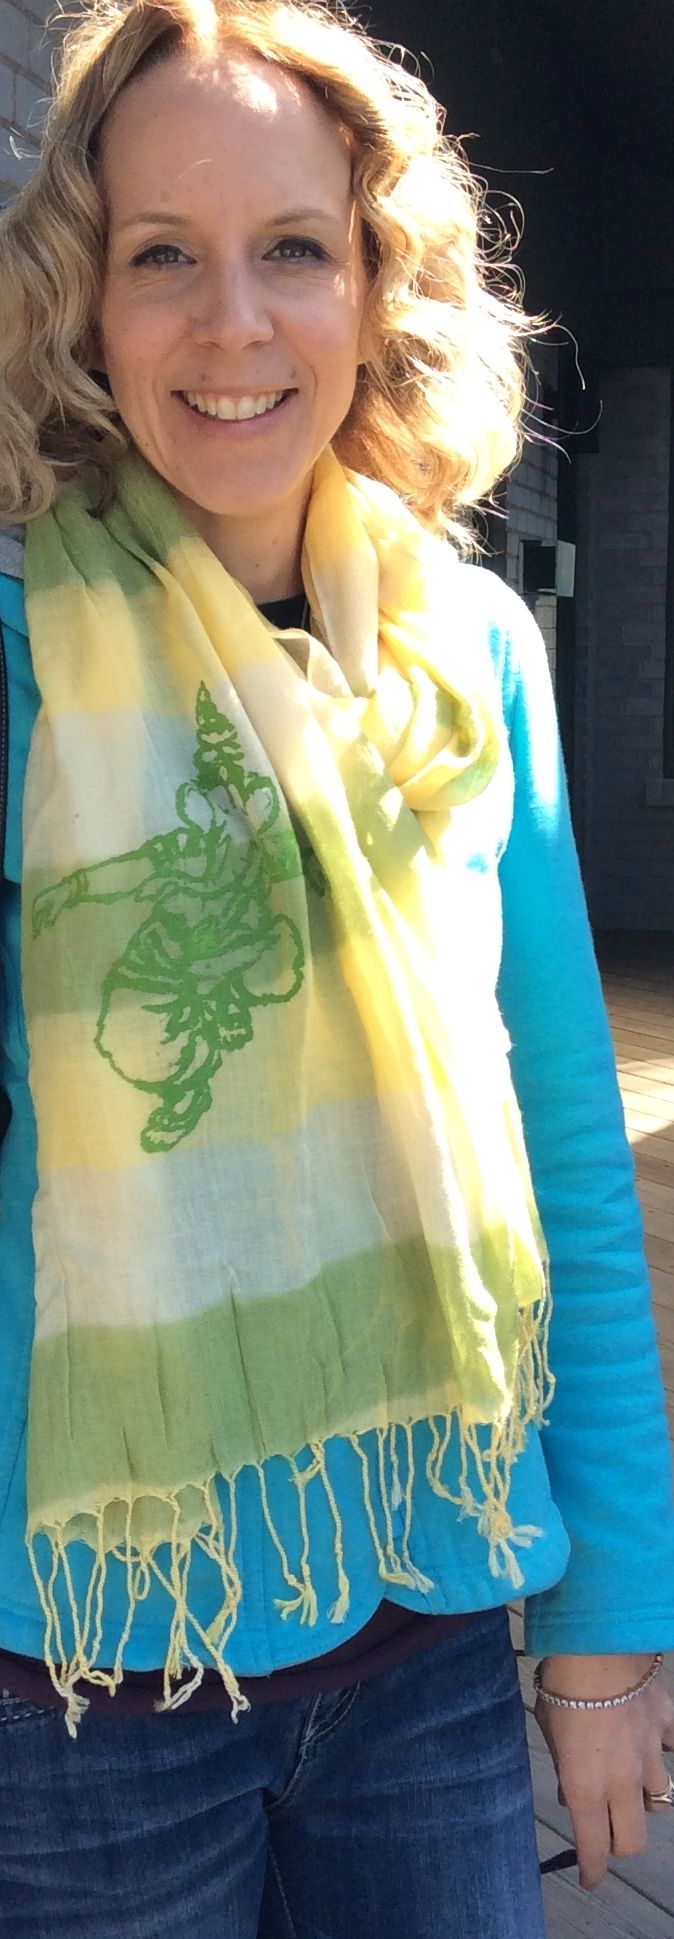 Melissa West is wearing our New Hand printed Dancing Ganesh Scarf in Shades of Spring Green.  http://squeezed.ca/shop/category/scarves